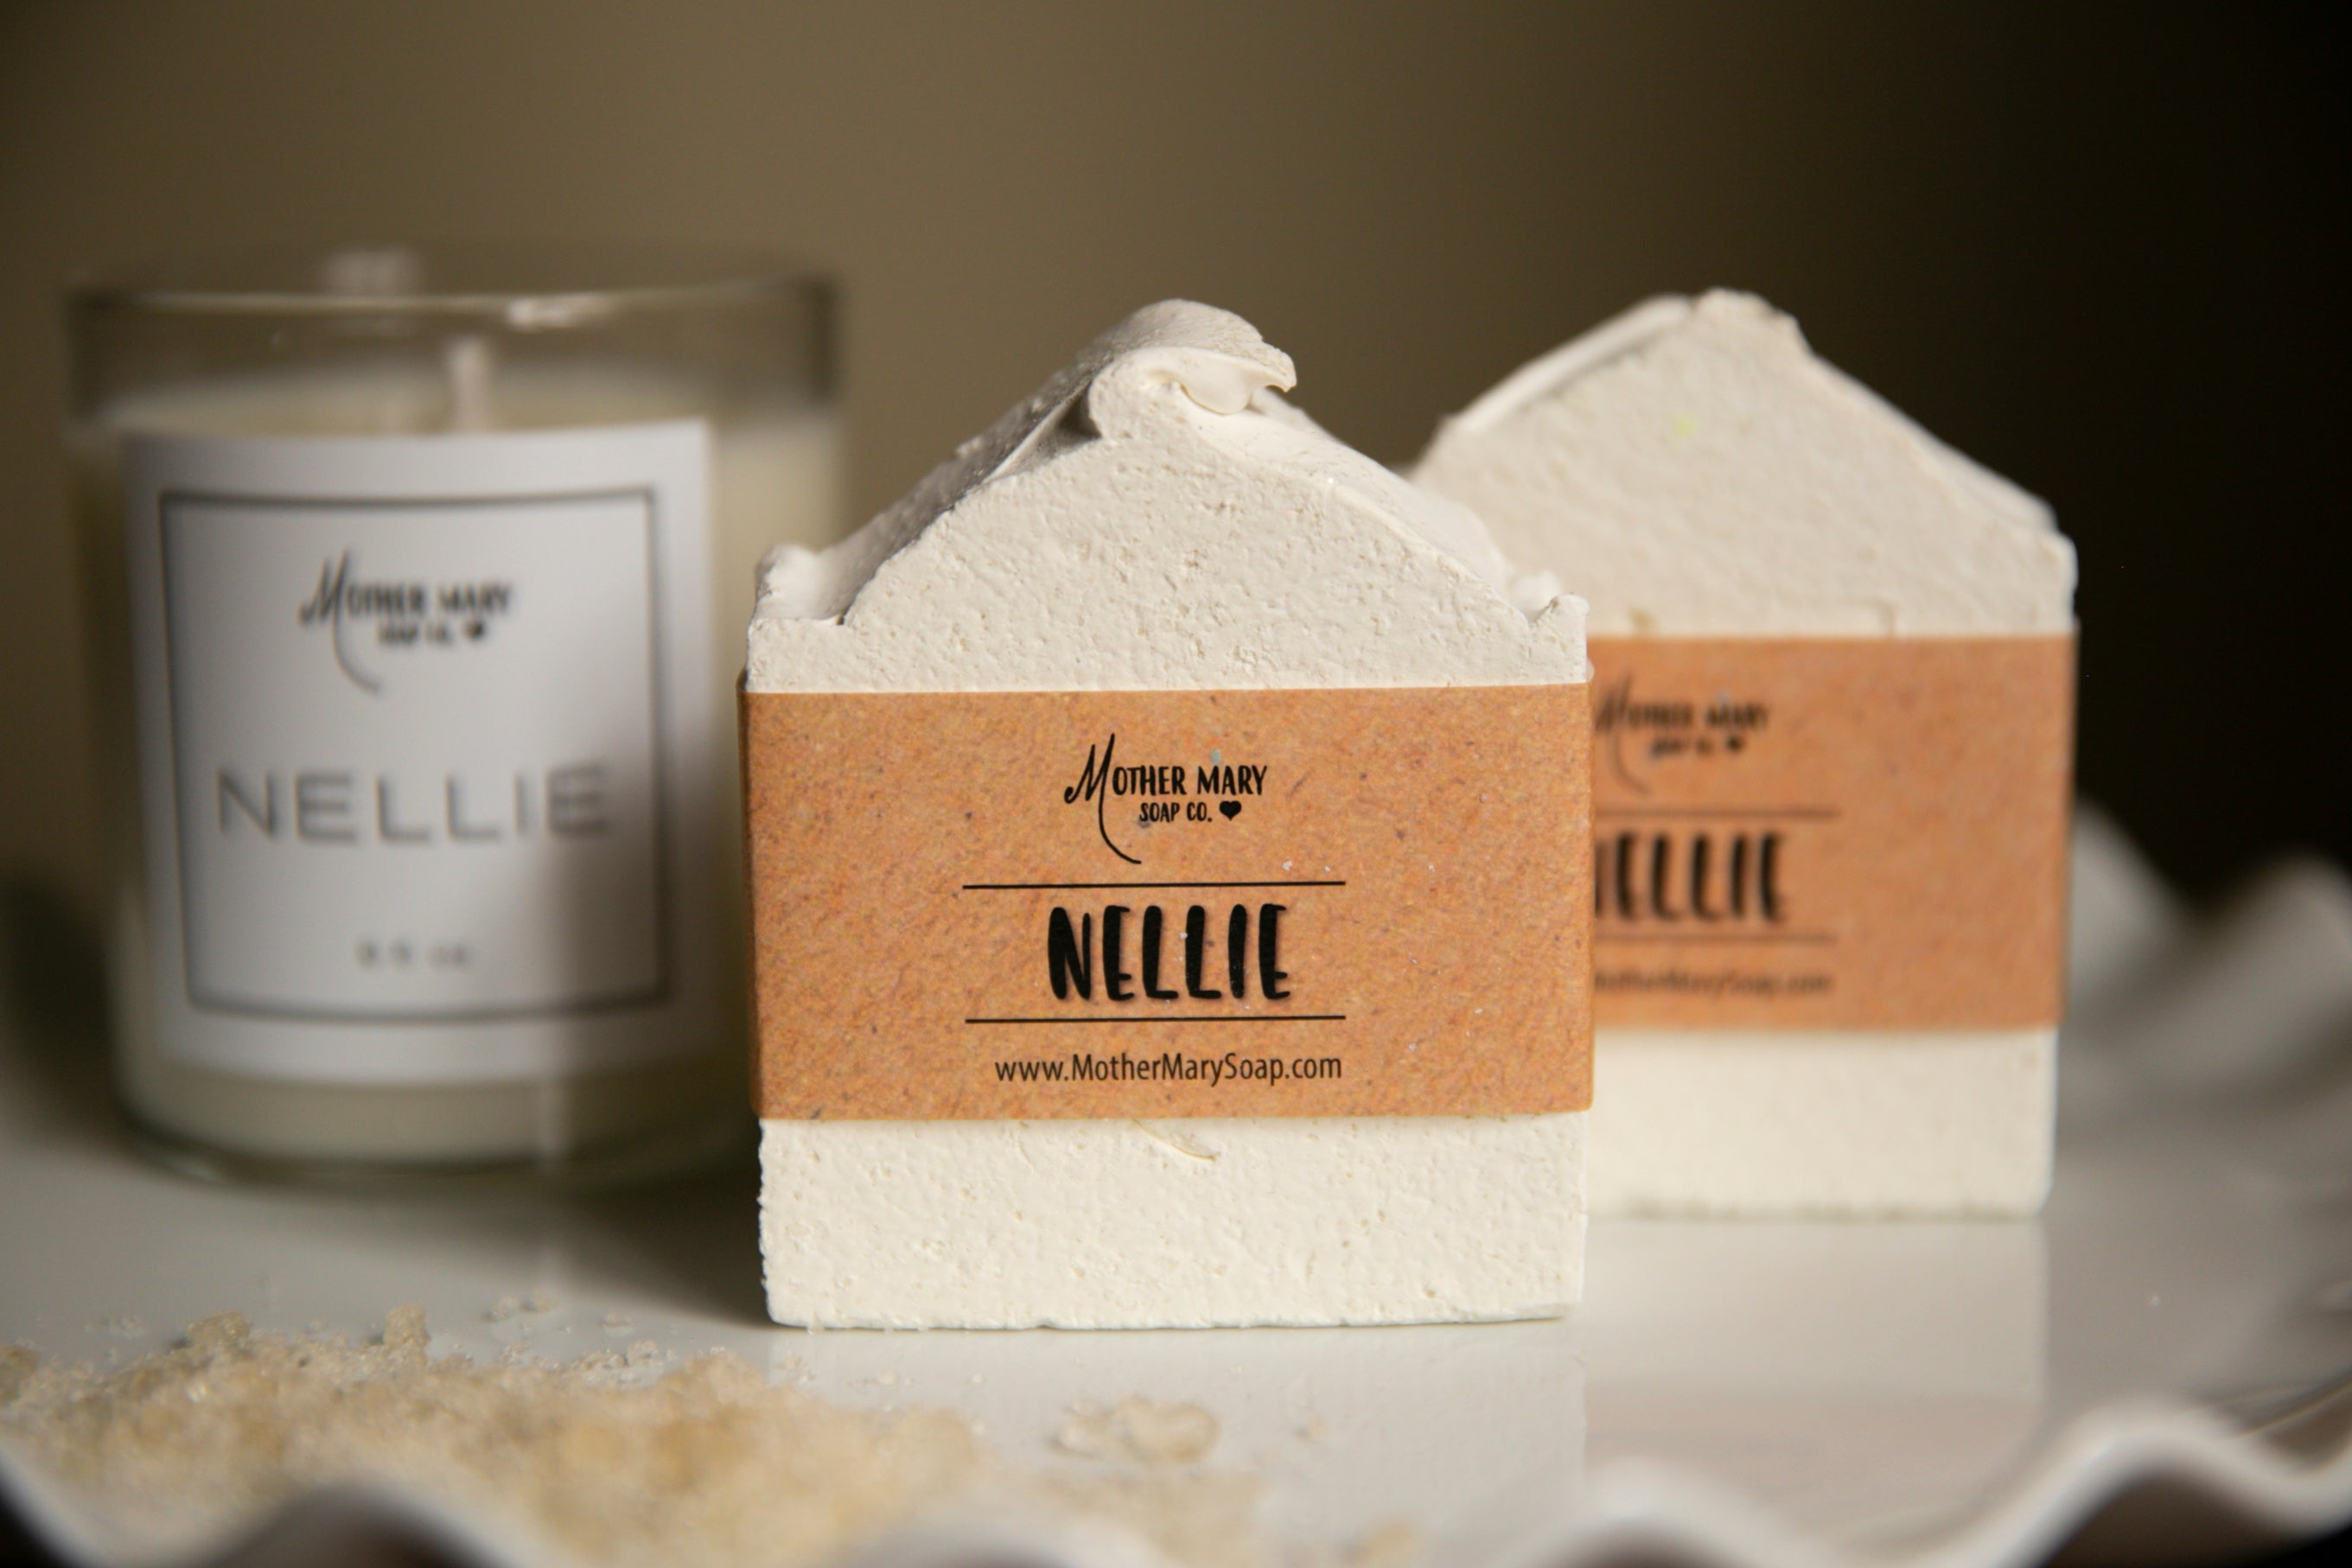 Nellie Soap